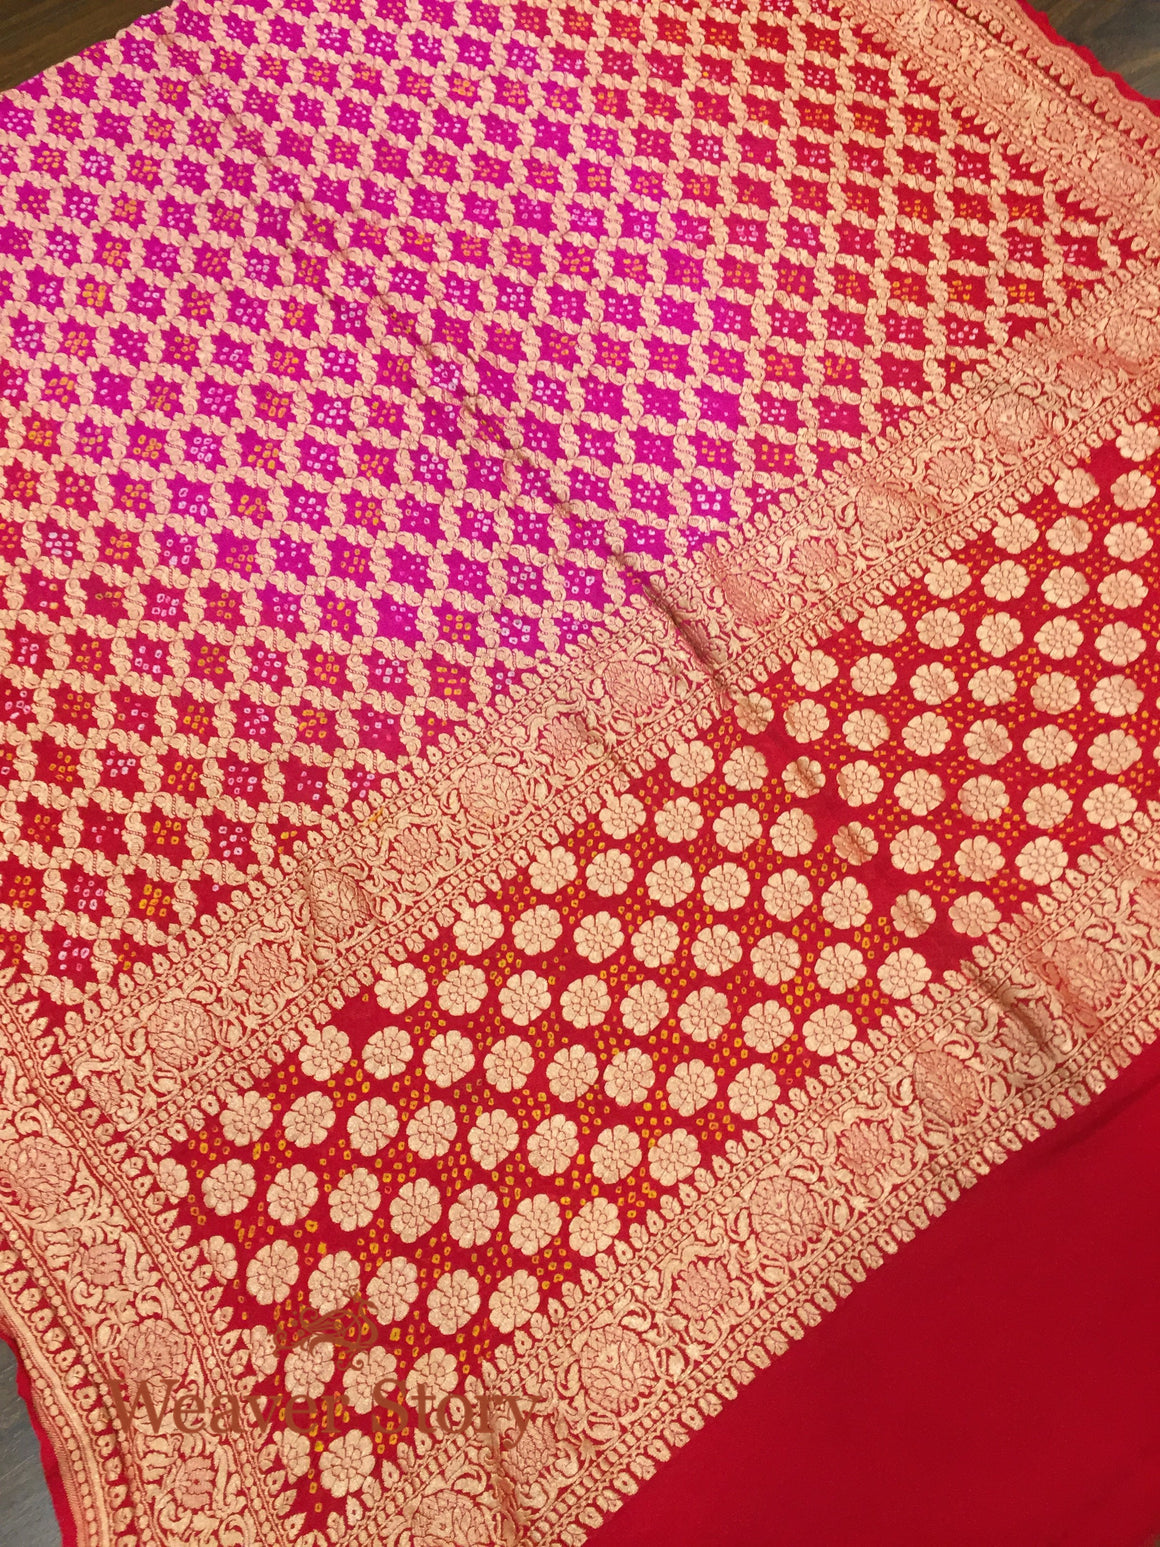 Handwoven Red and Pink Bandhej Dupatta